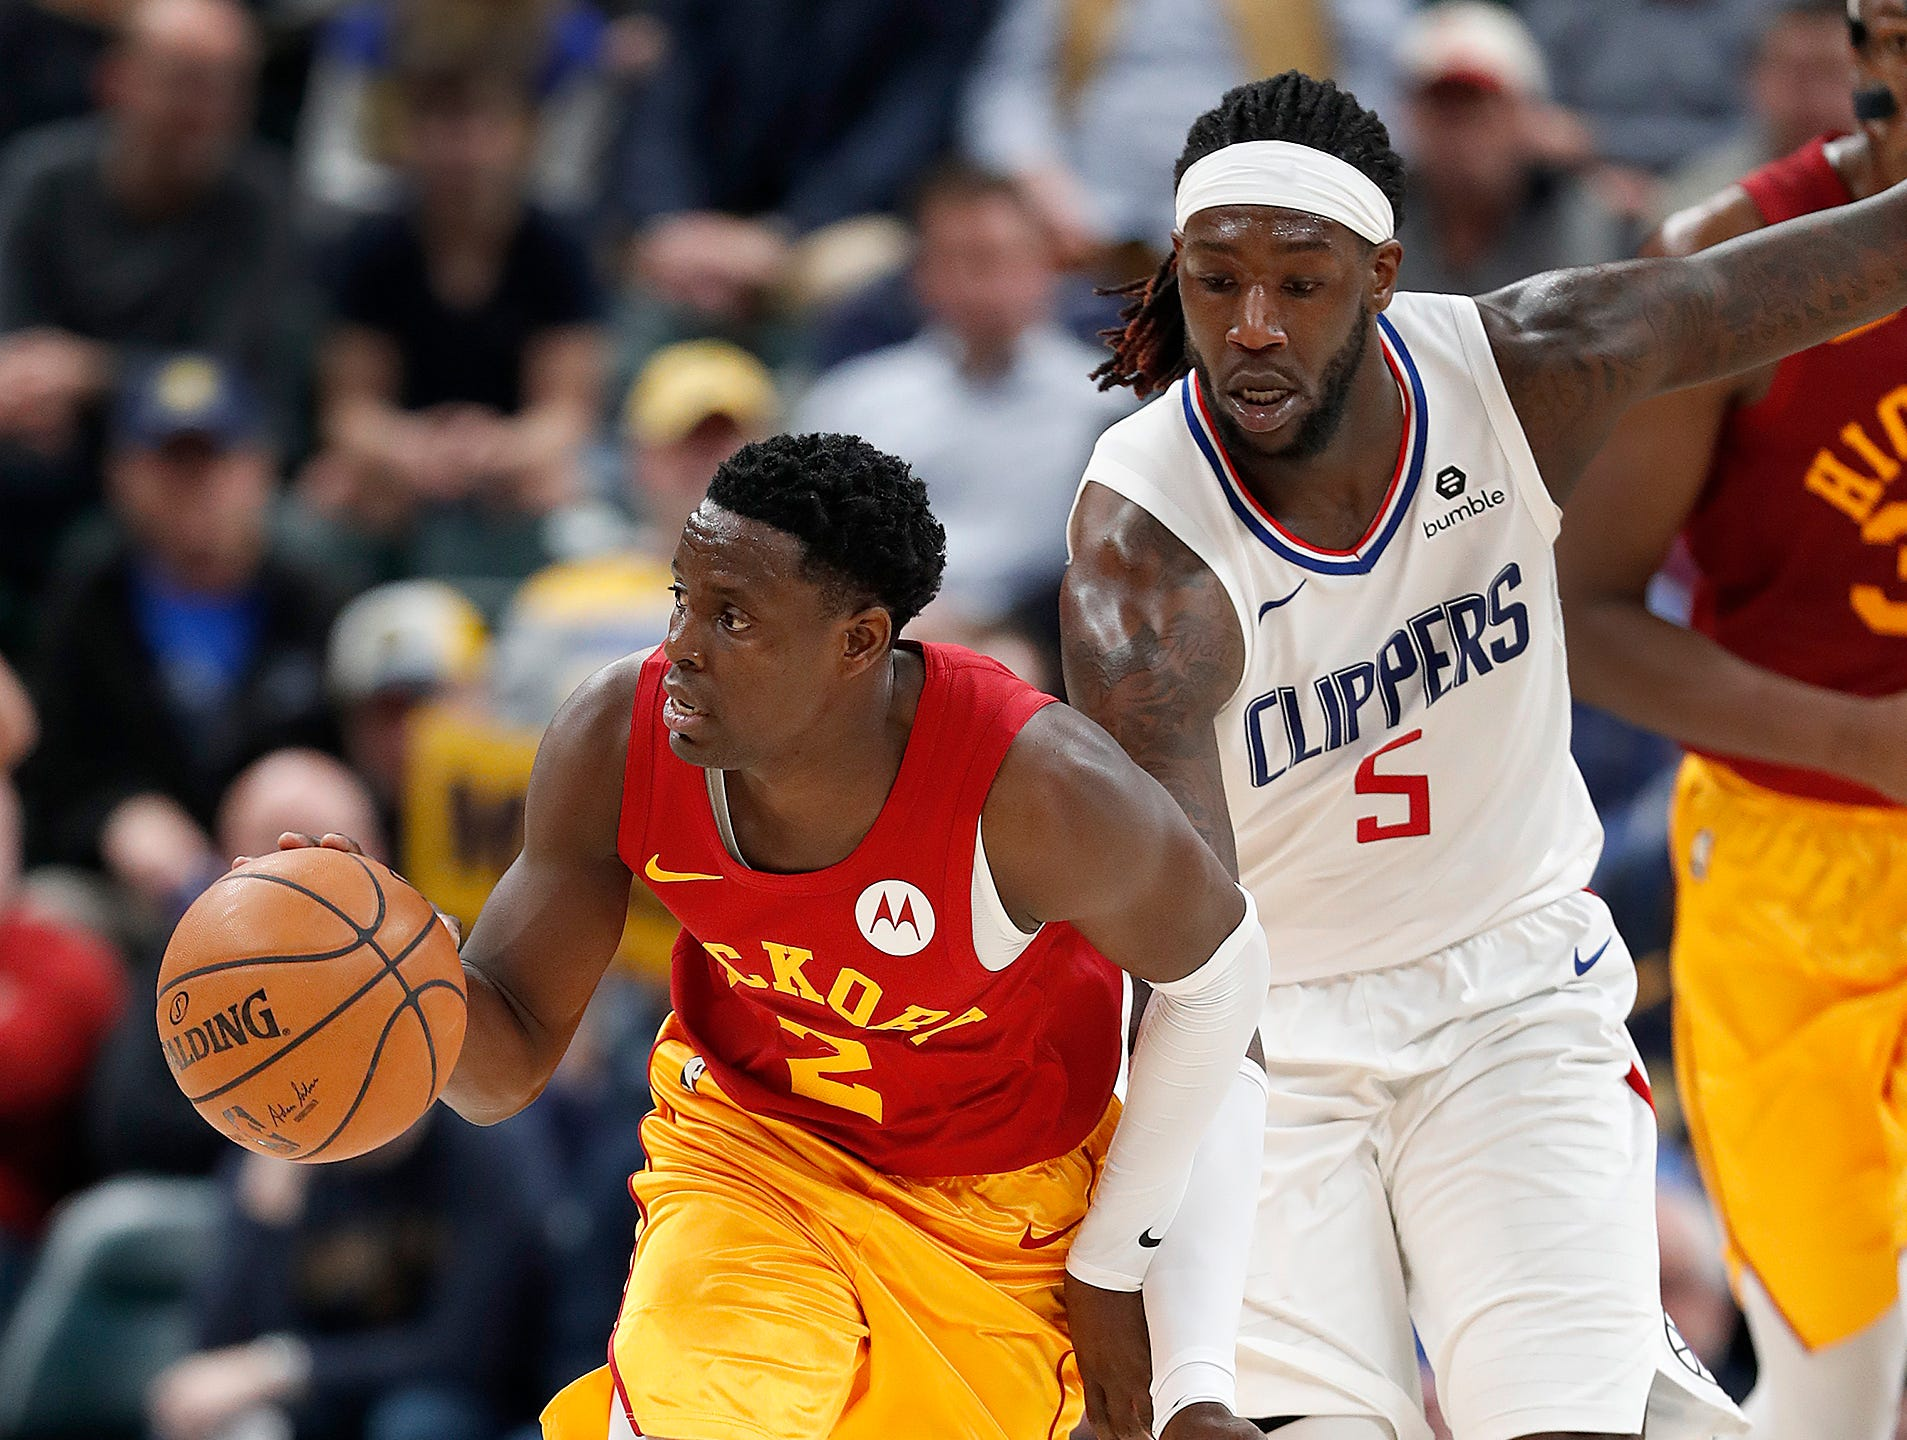 Indiana Pacers guard Darren Collison (2) starts the fast break by LA Clippers forward Montrezl Harrell (5) in the second half of their game at Bankers Life Fieldhouse on Thursday, Feb. 7, 2019.